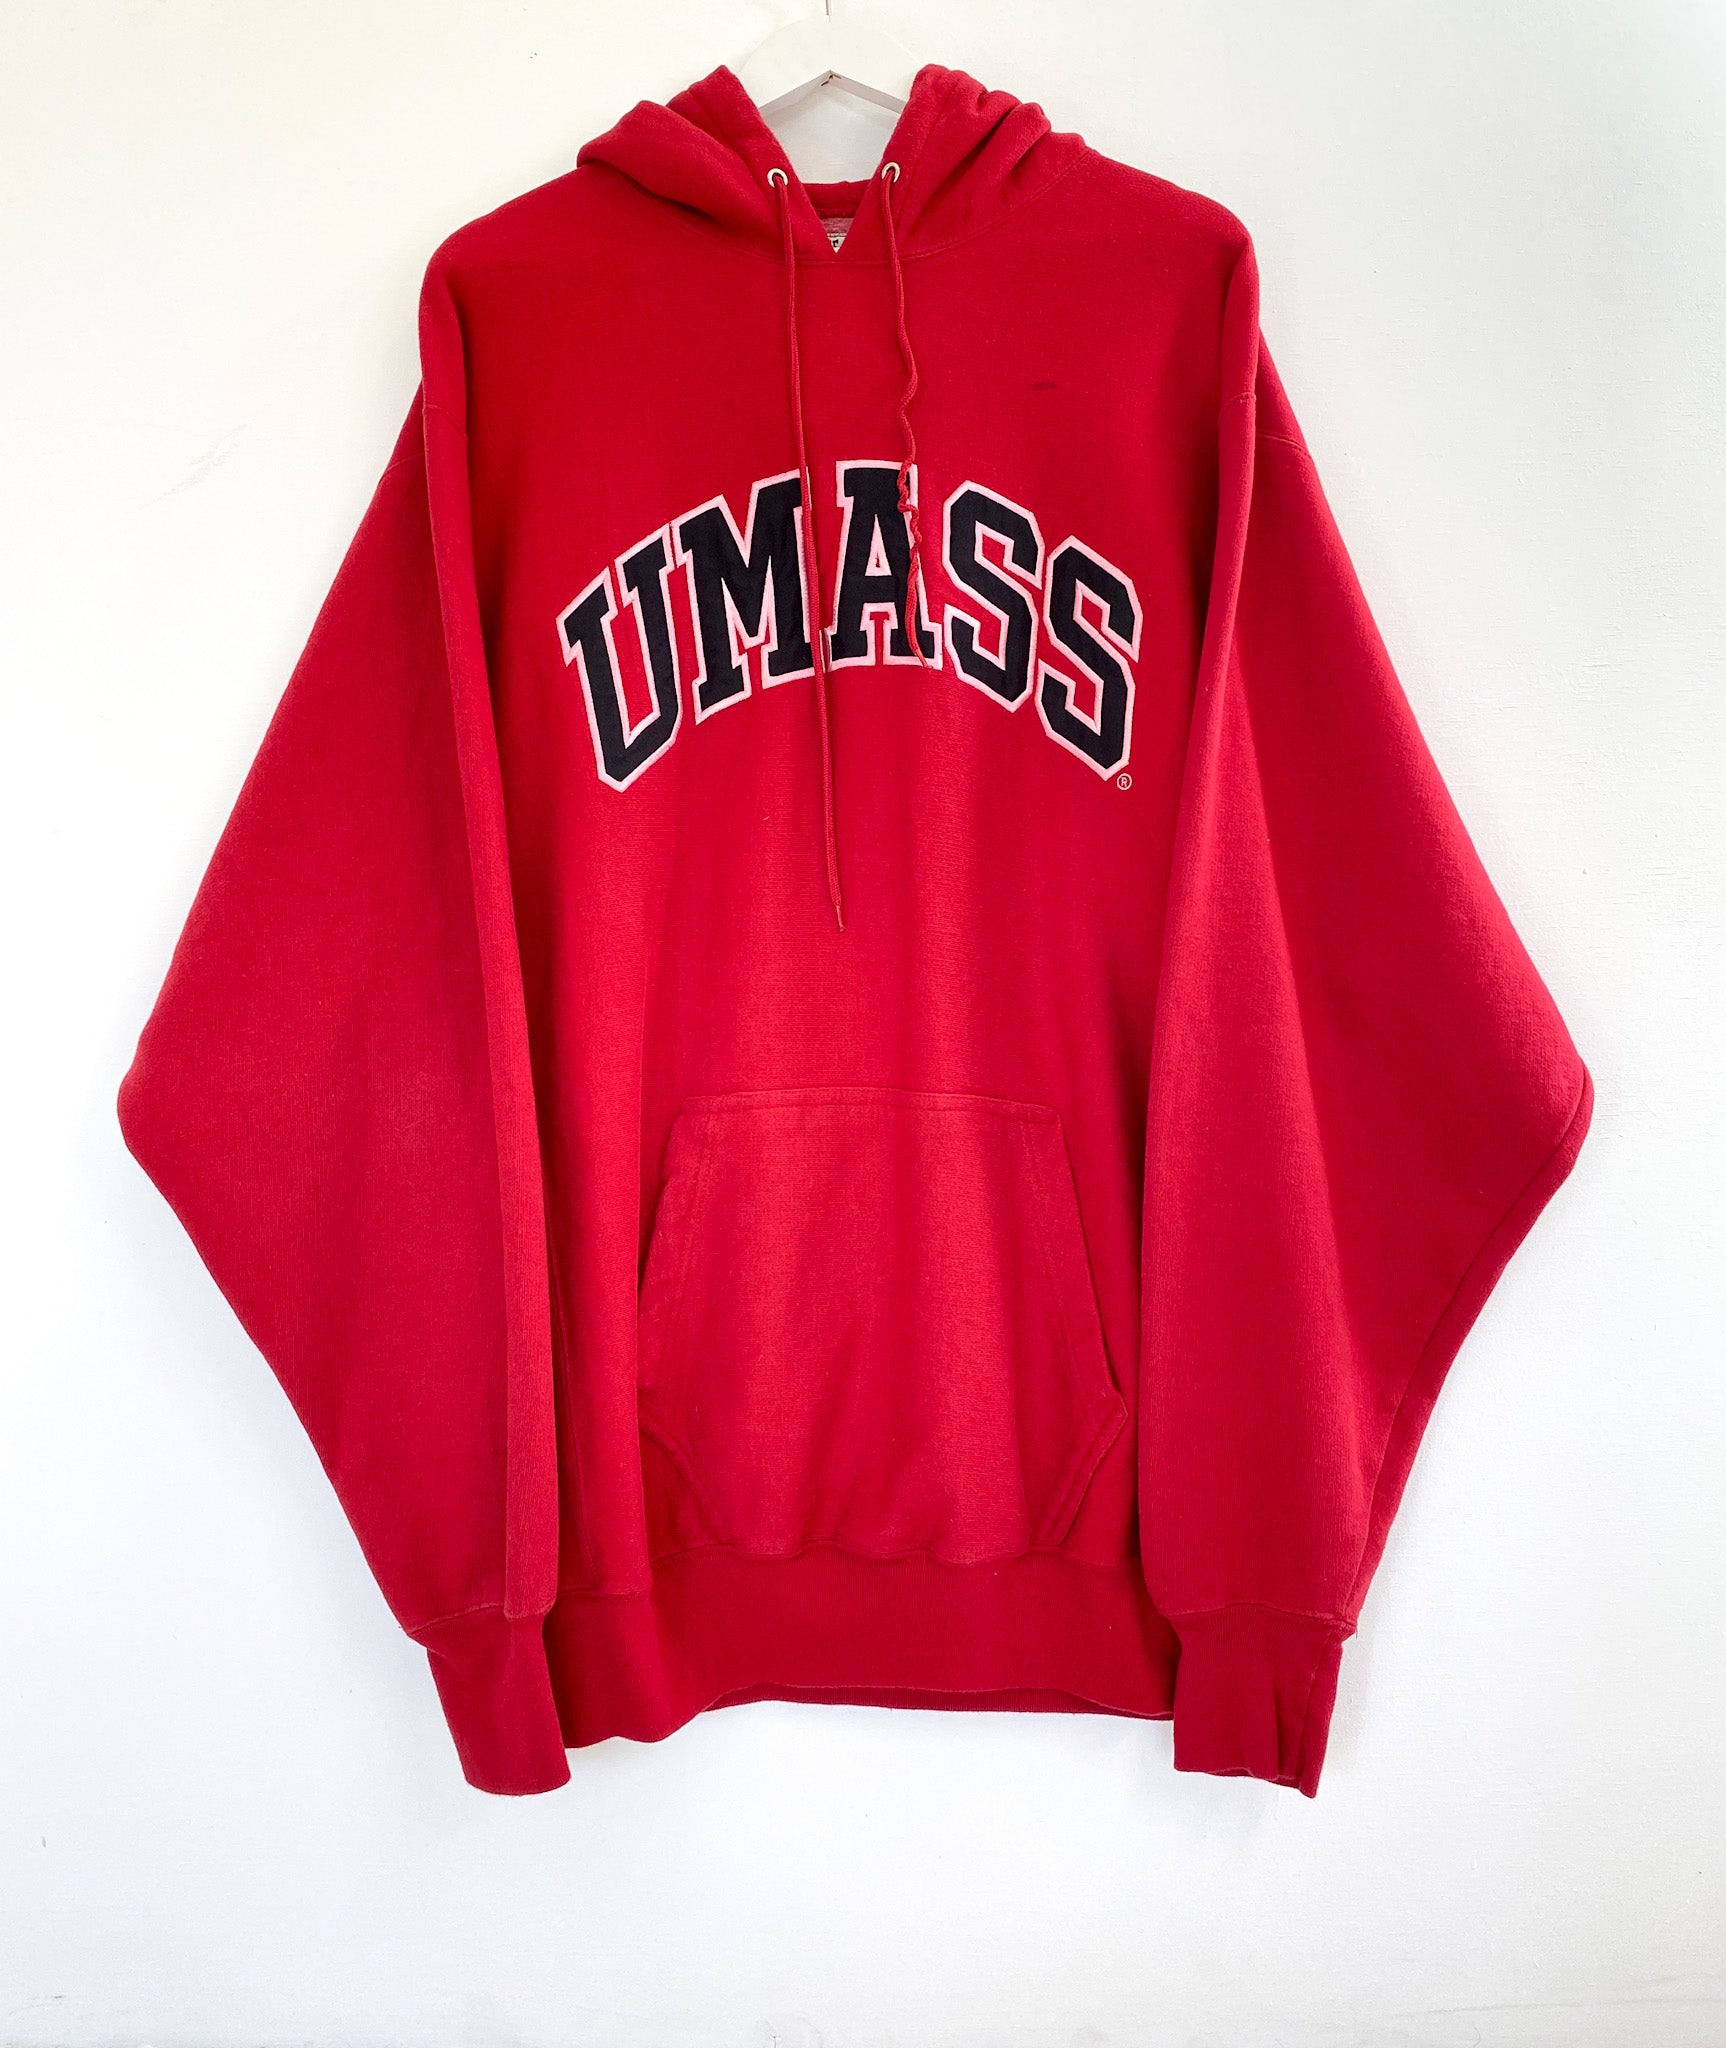 UMASS COLLEGE SWEATSHIRT (XL)